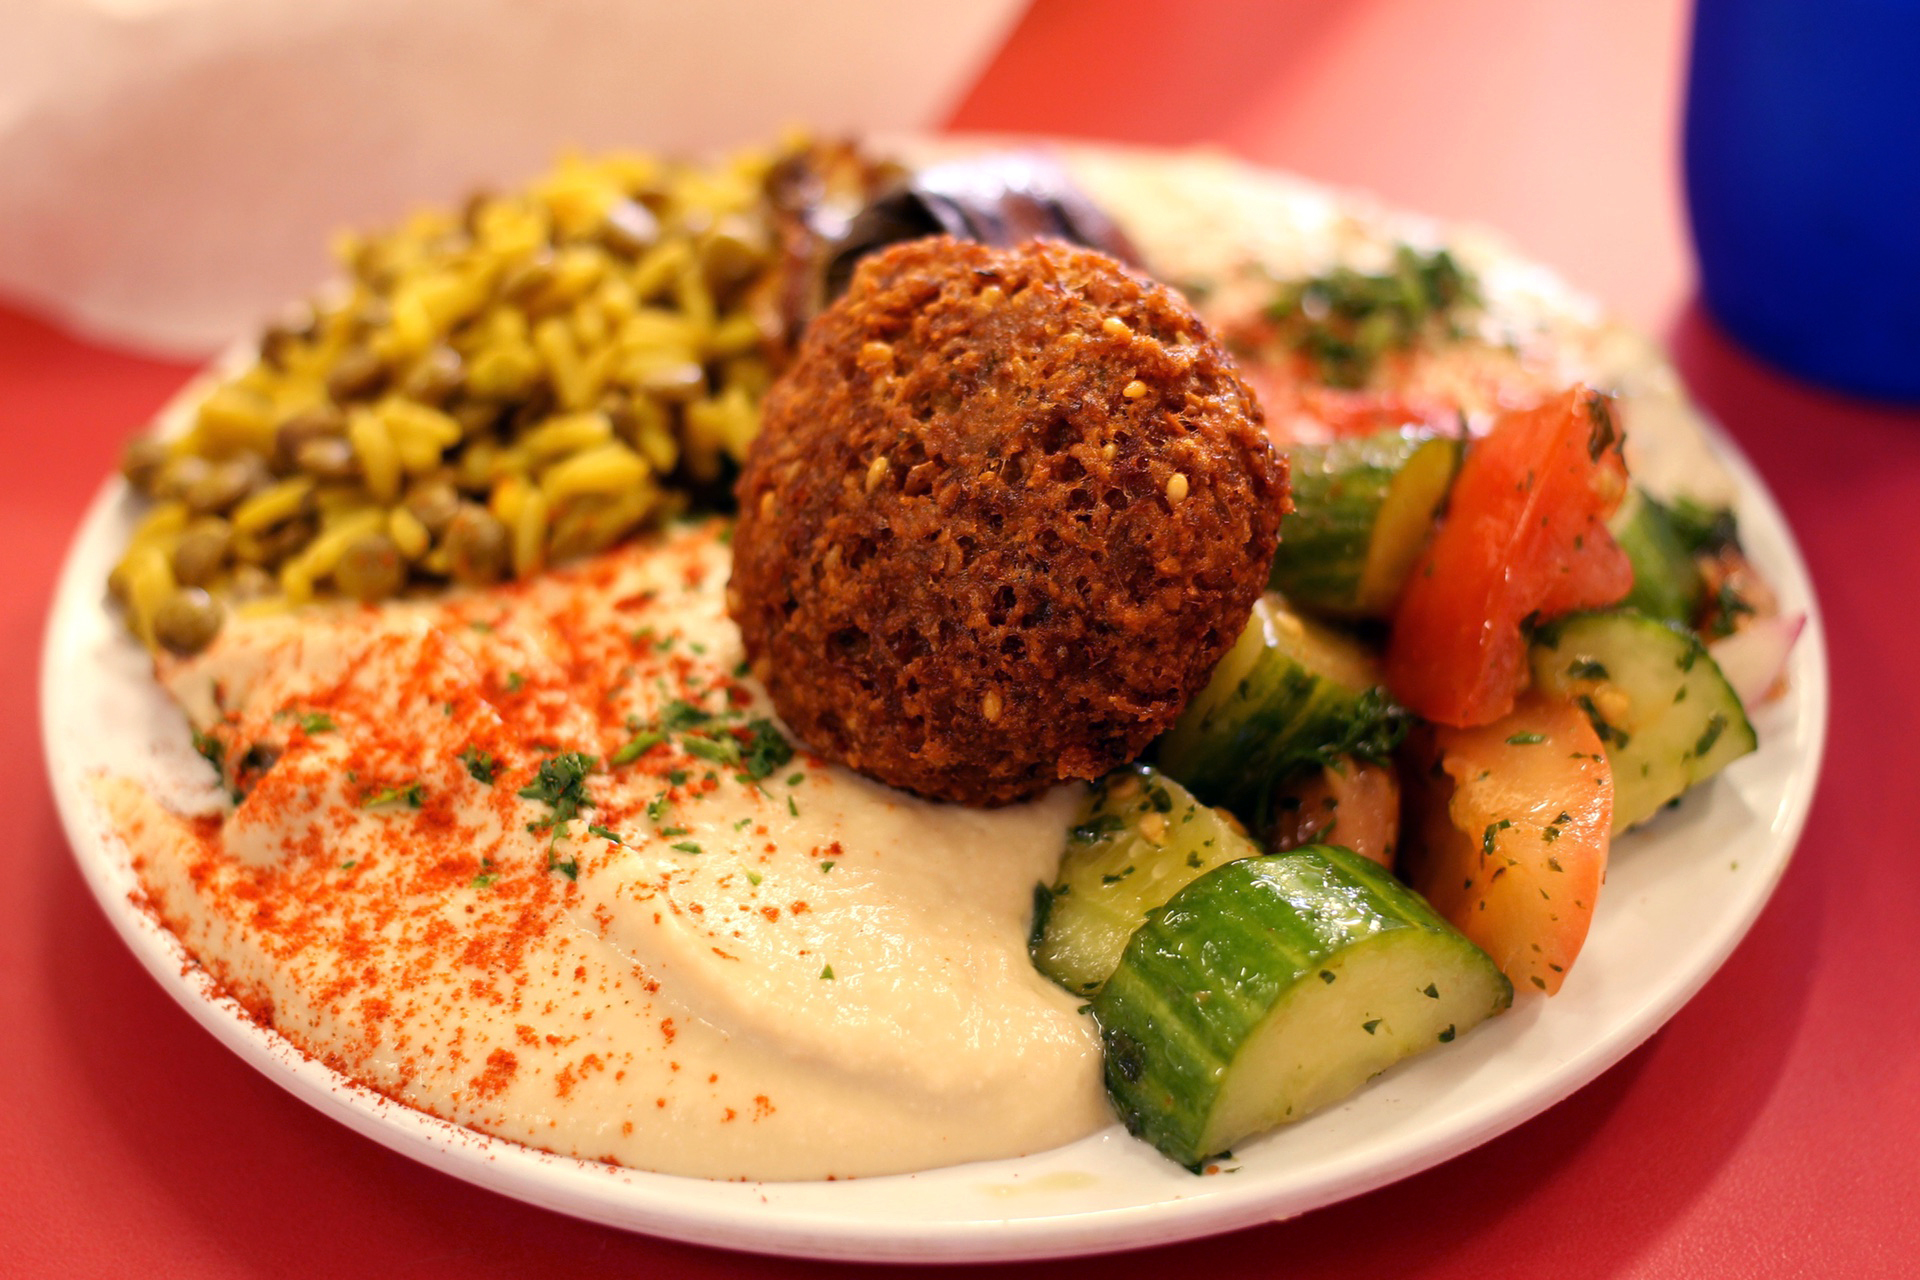 The vegetarian plate at Sunrise Deli in San Francisco includes falafel, hummus, cucumber salad, one dolma, lentils and rice.